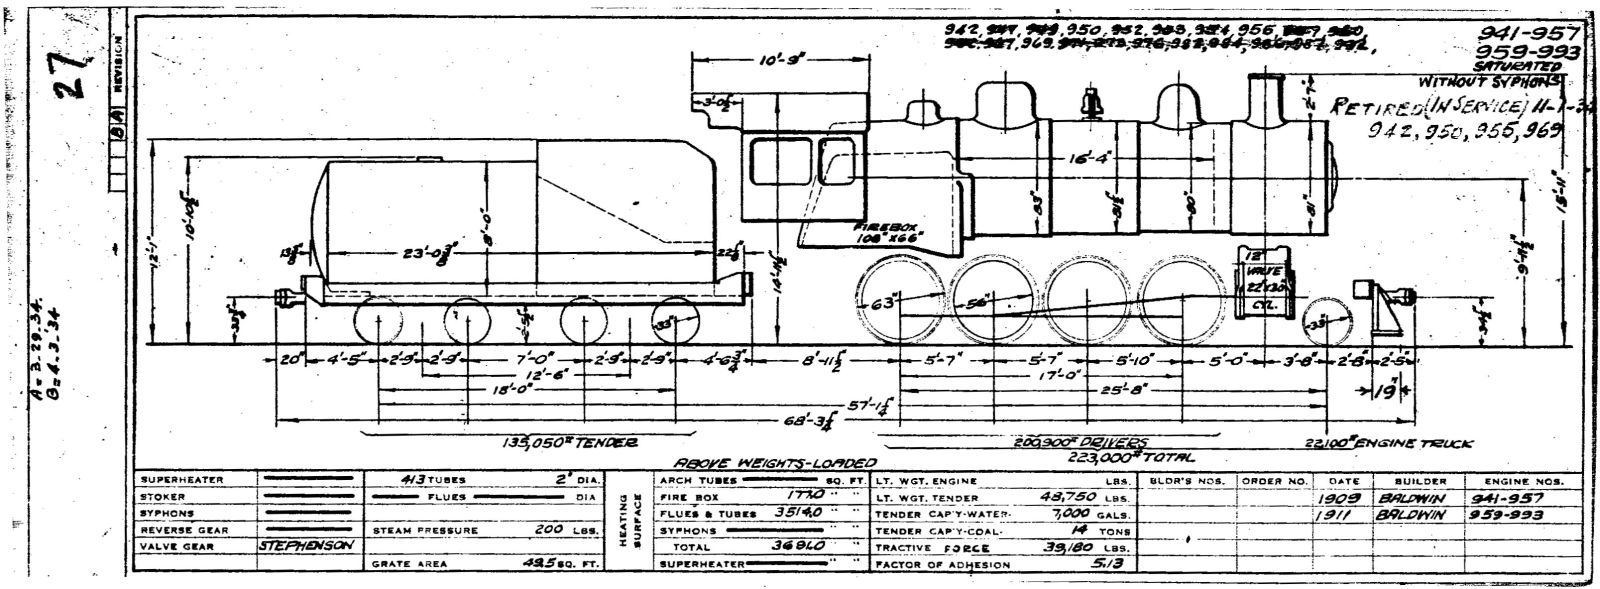 Illinois Central 1937 Locomotive Diagrams 427 Engine Diagram 17 Locomotives